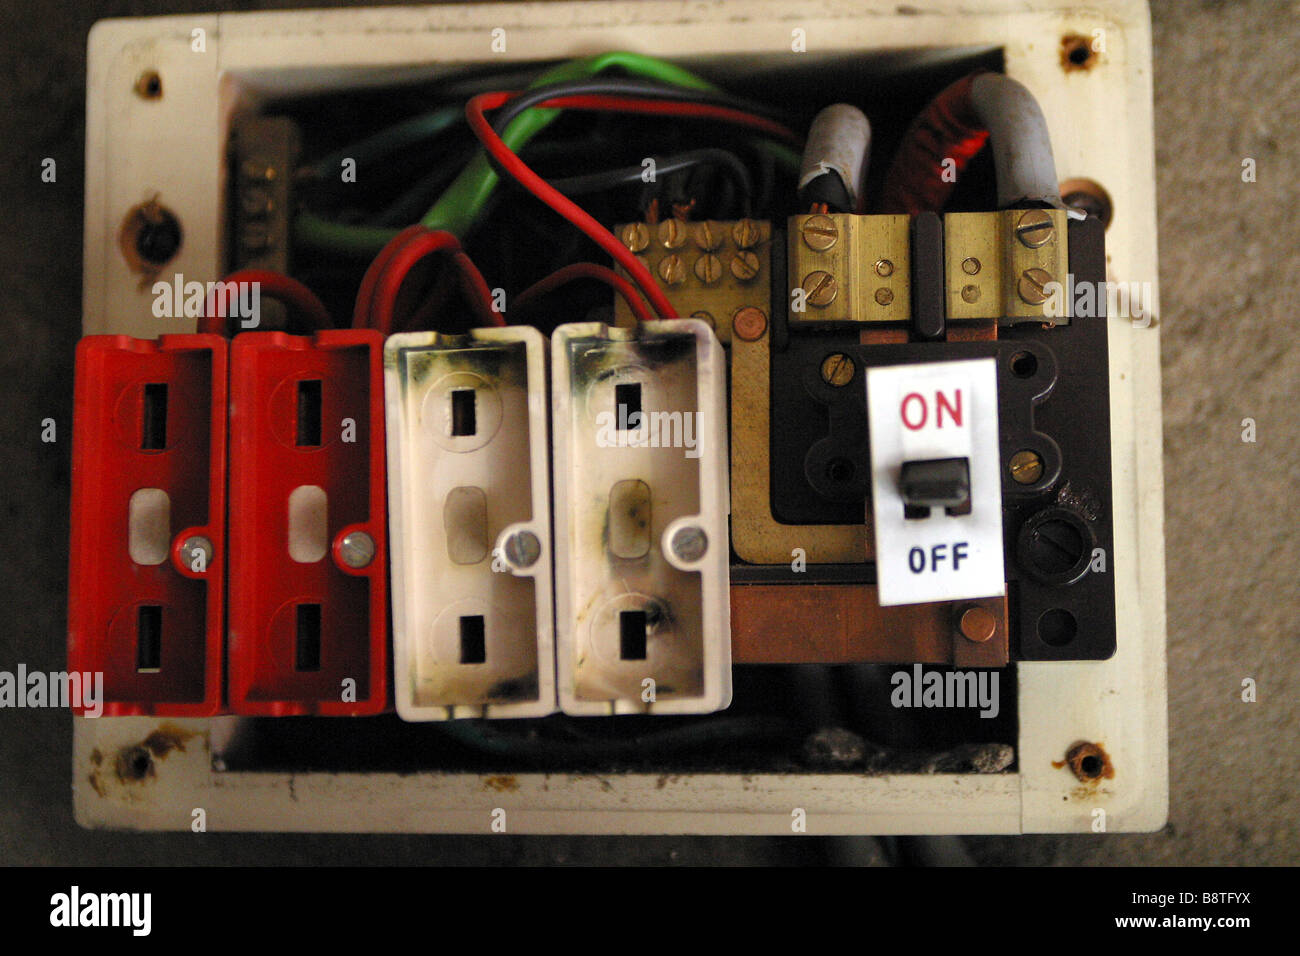 hight resolution of old electrical fuse box stock photos old electrical fuse box stock old electrical fuse box old electrical fuse box